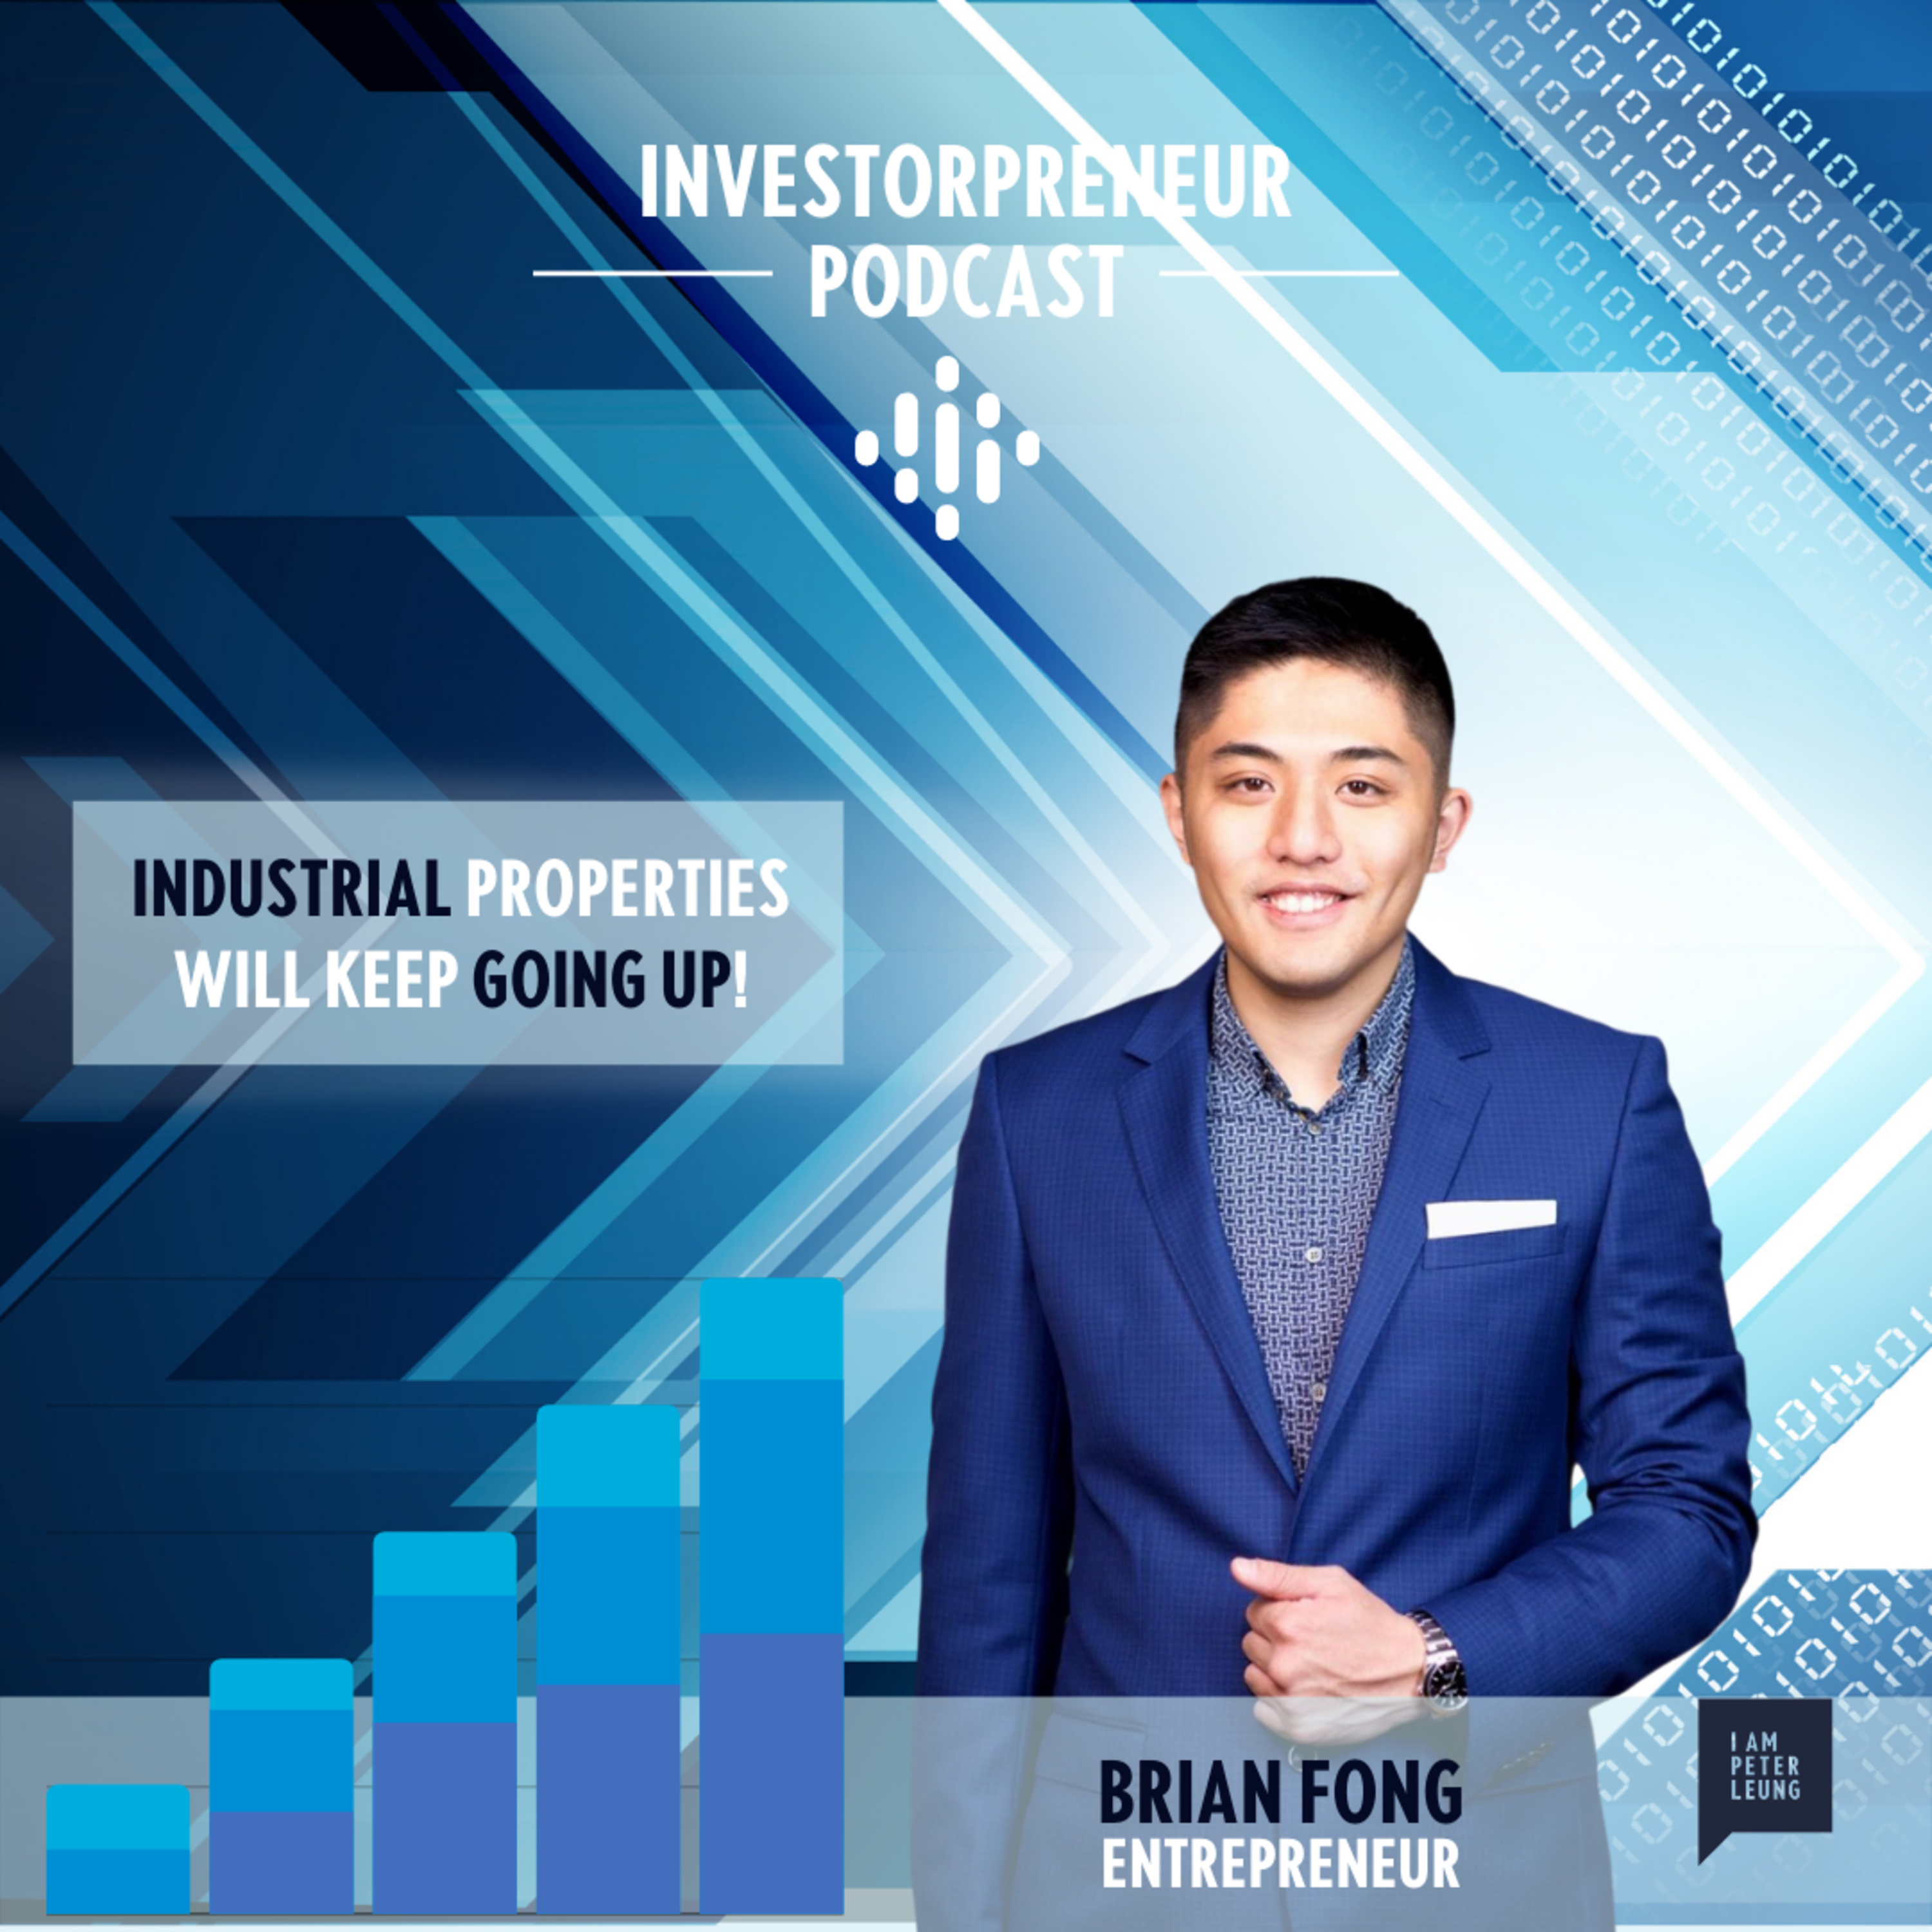 Industrial Properties are going up! with Brian Fong